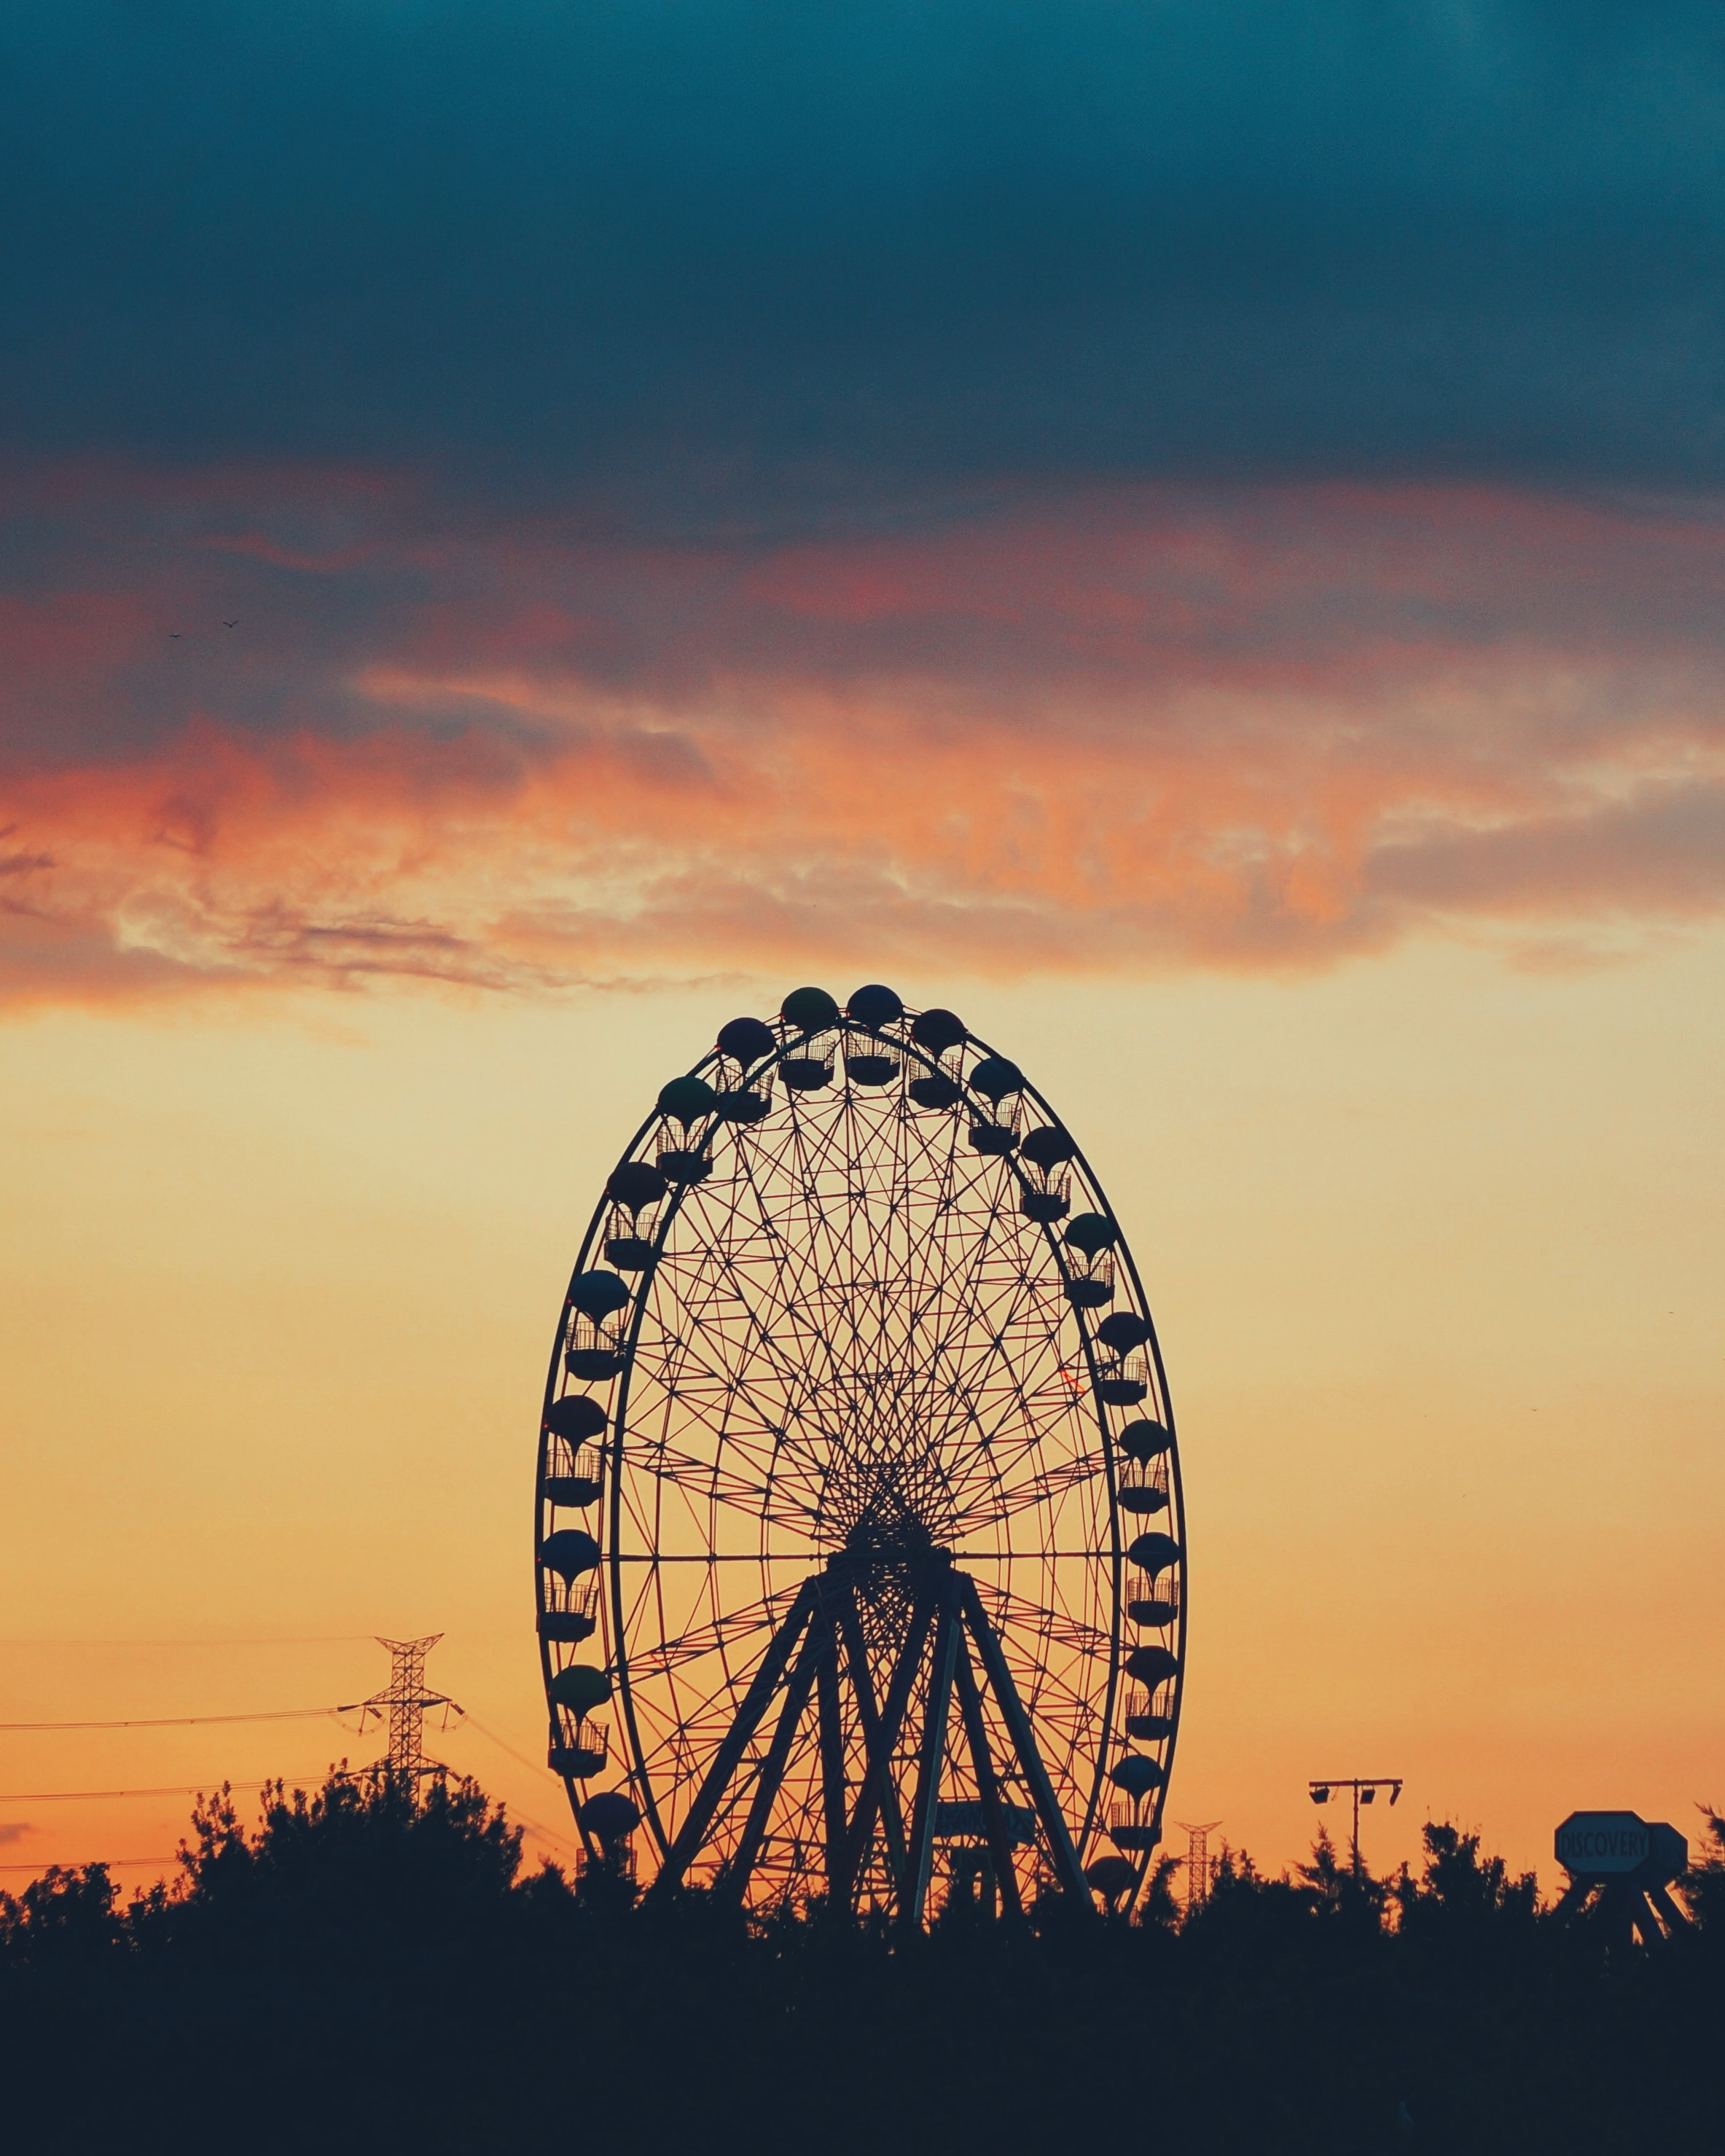 silhouette of Ferris wheel during golden hour